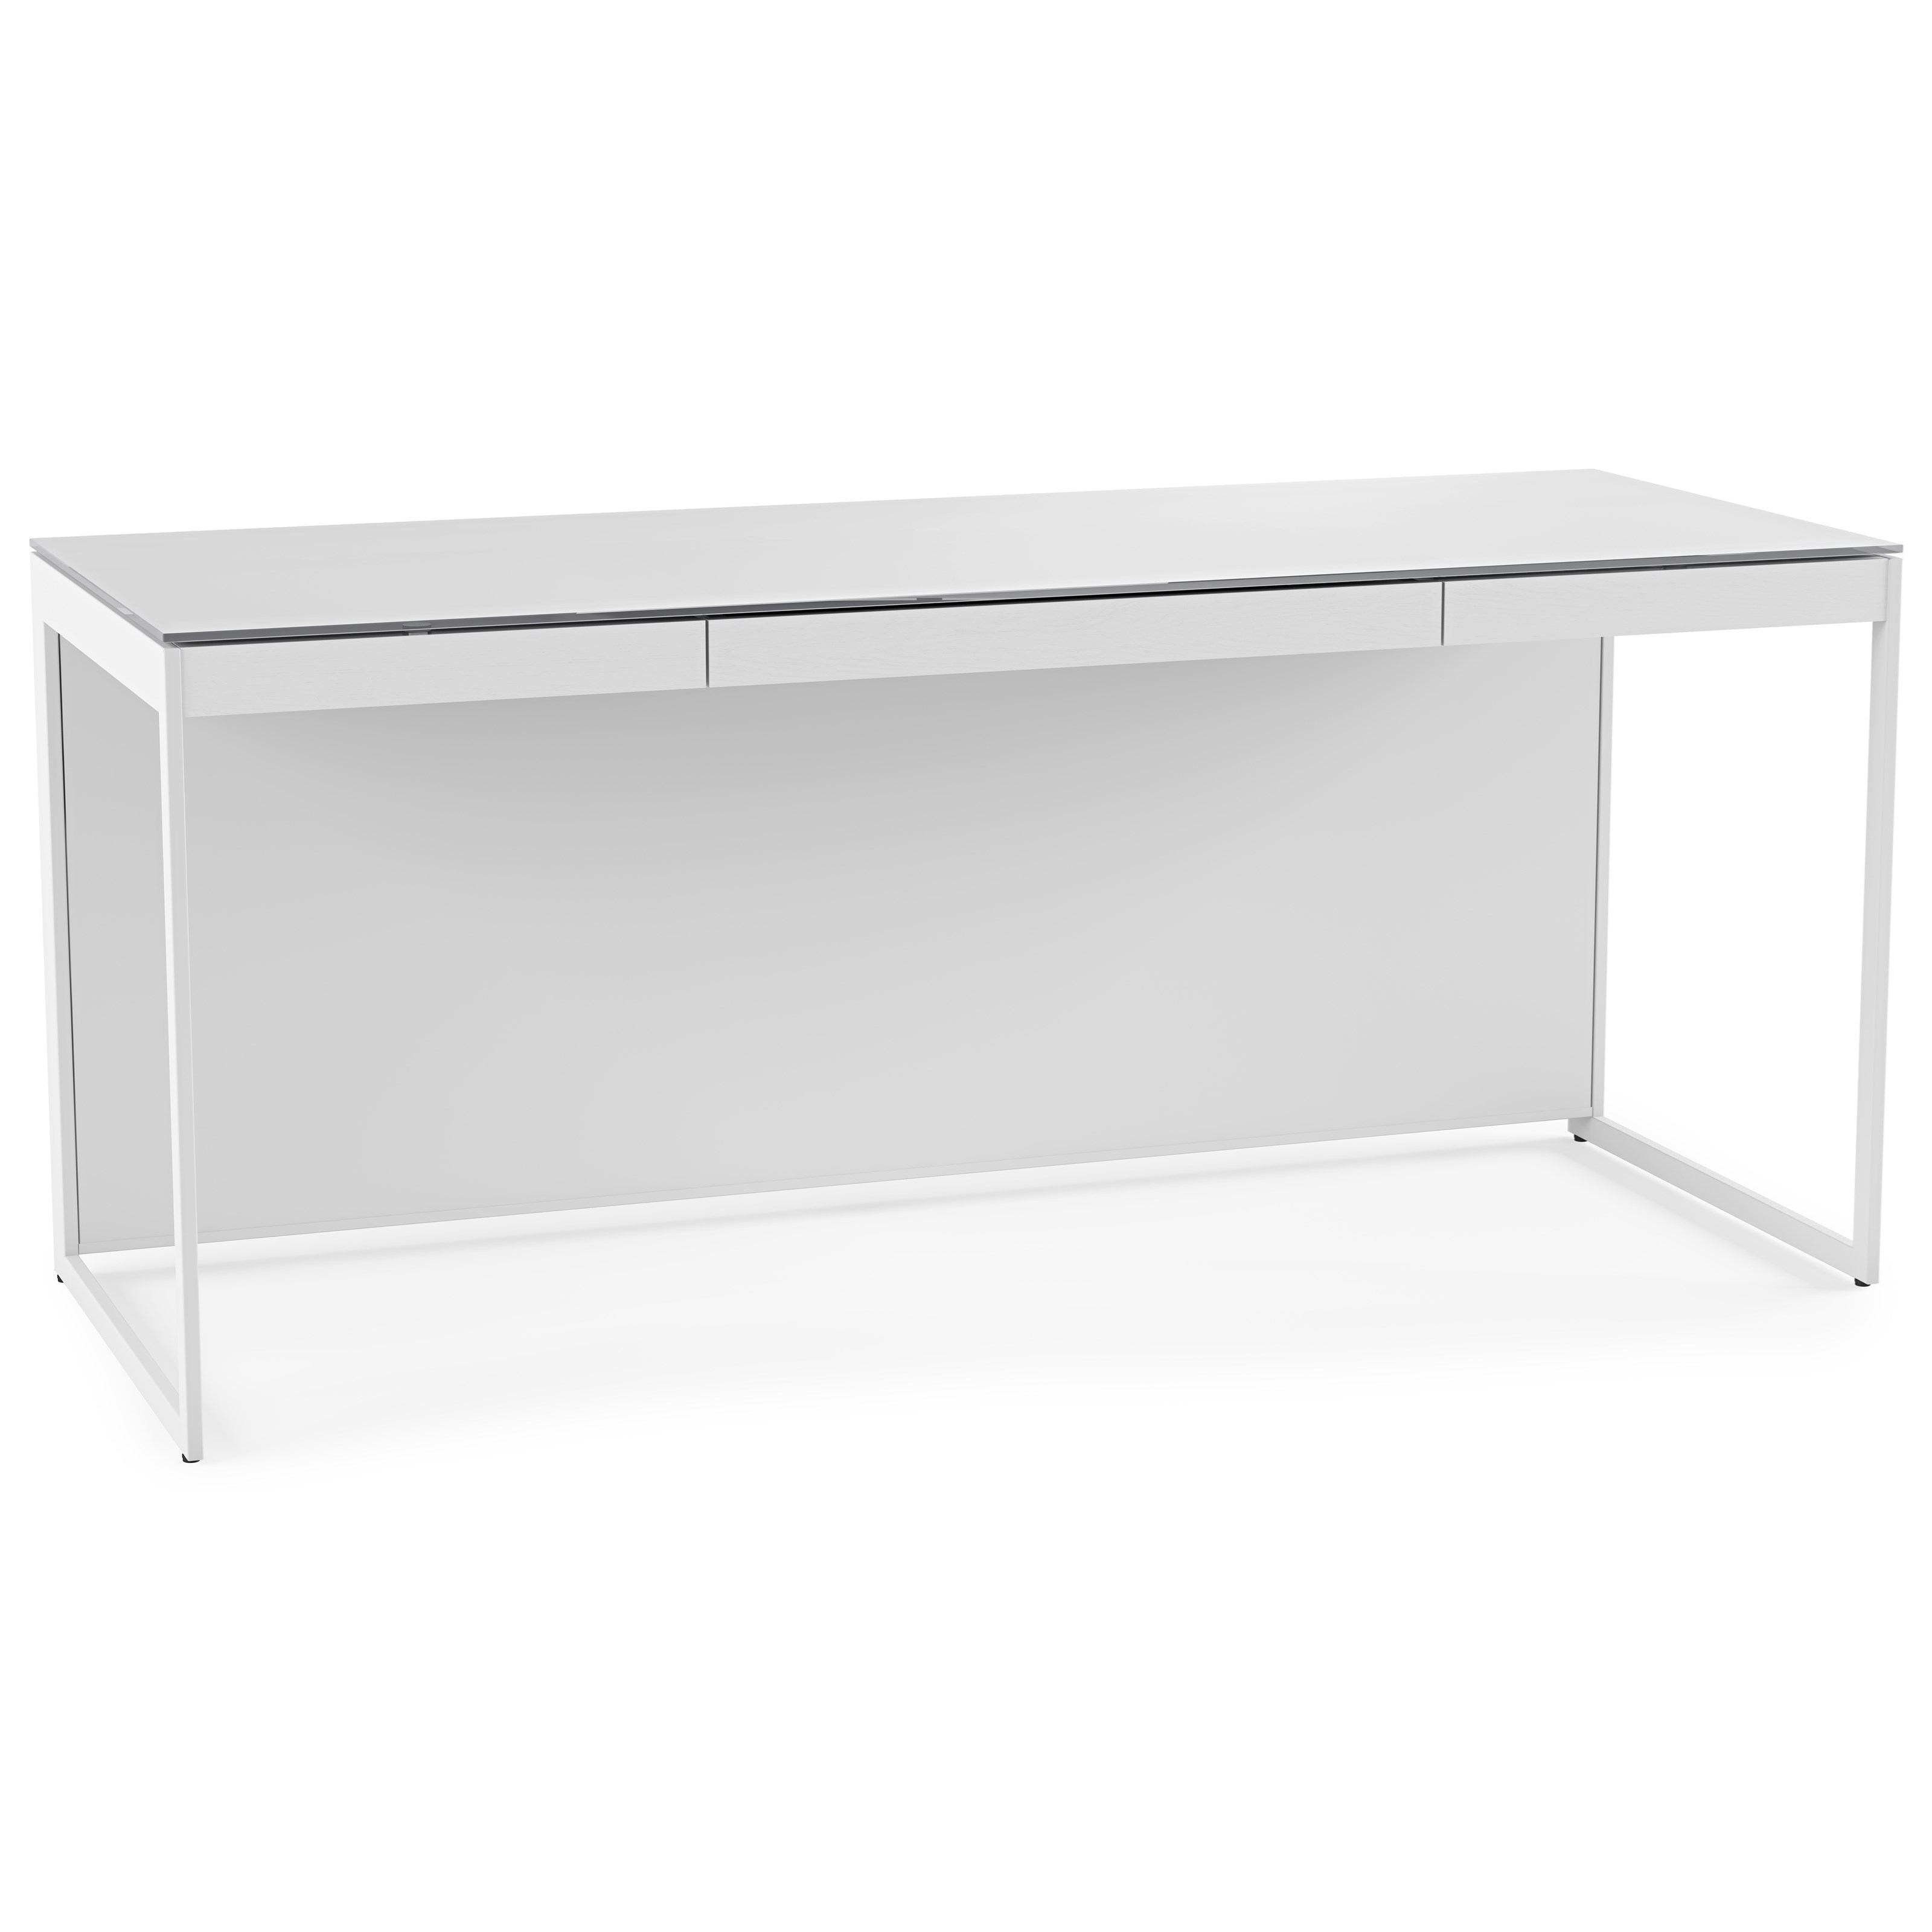 Centro Desk by BDI at Upper Room Home Furnishings